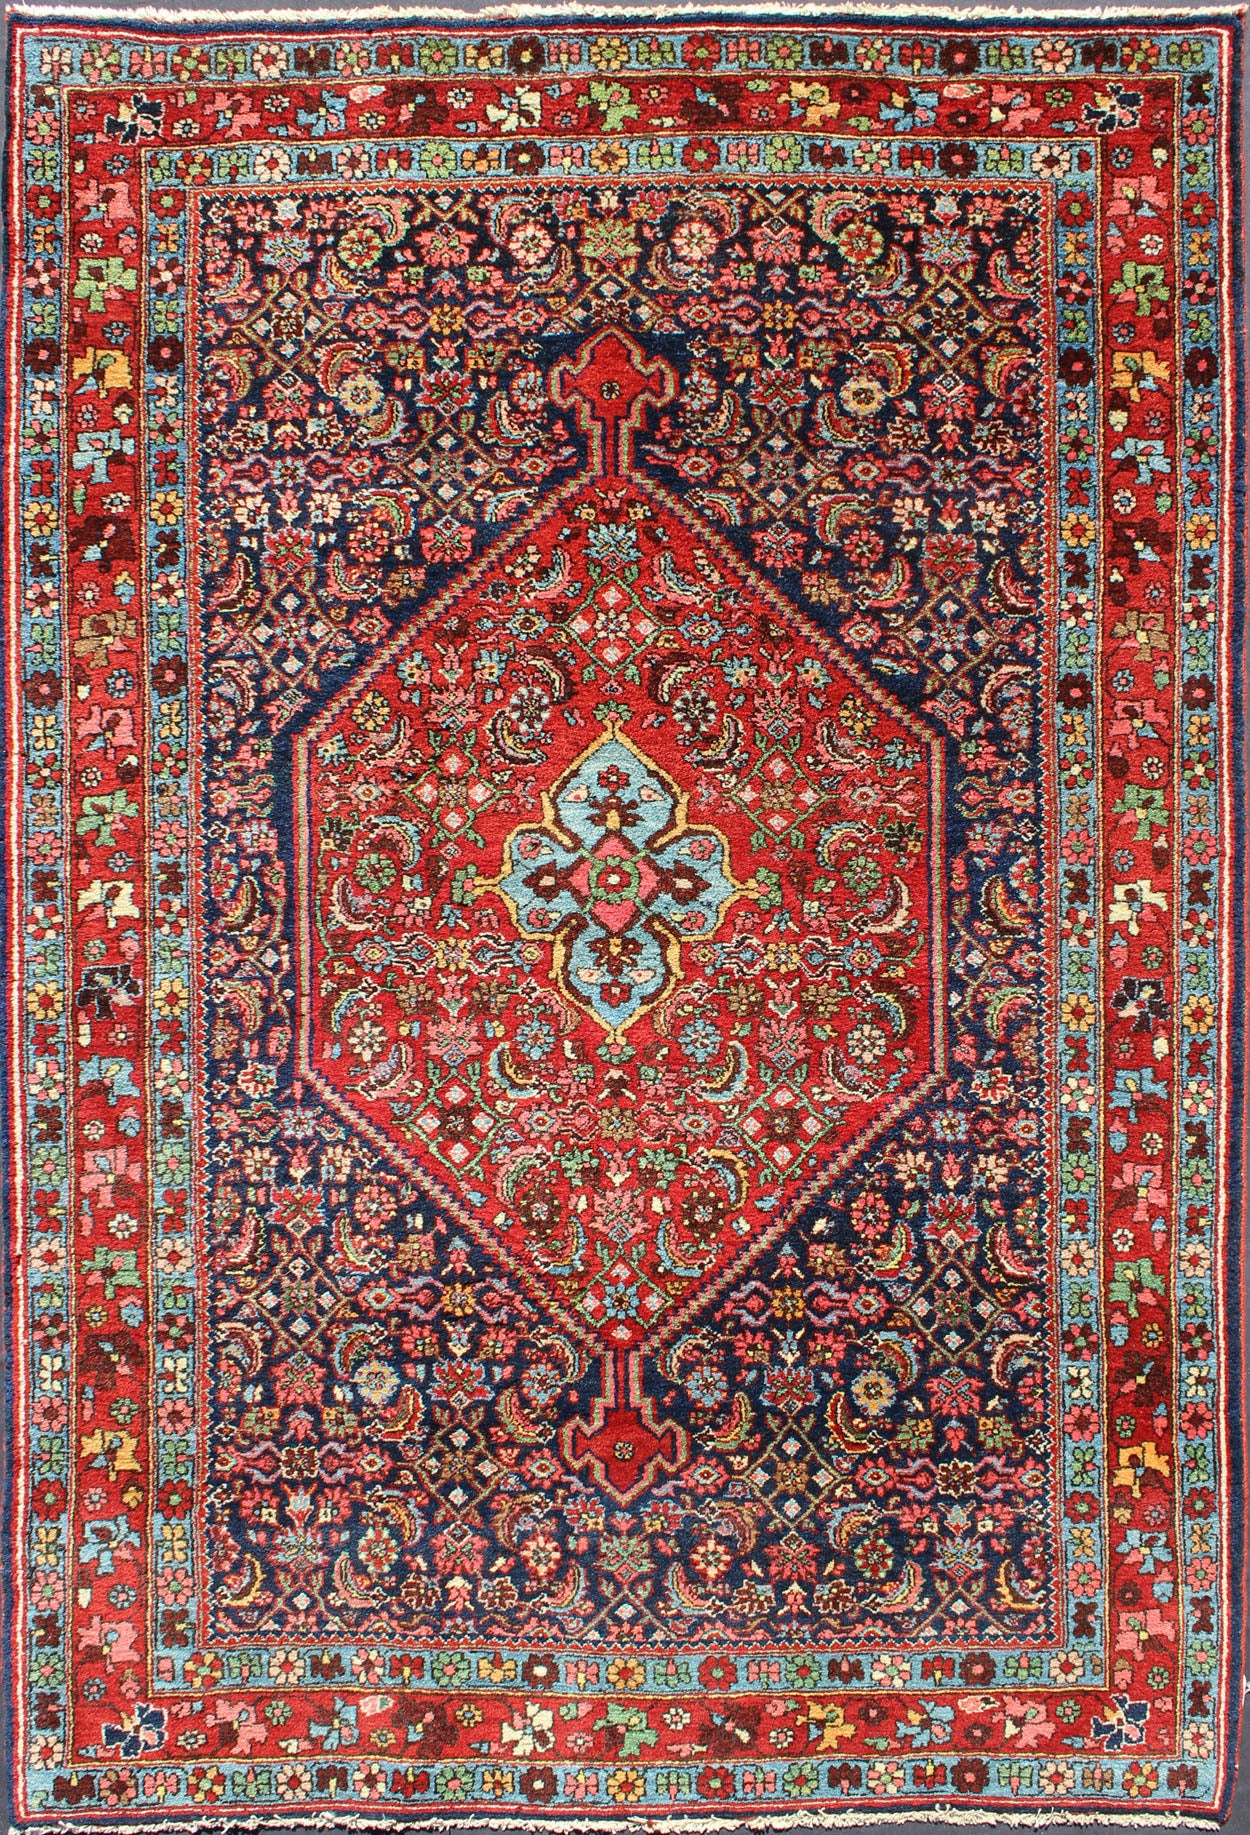 Bijar Rugs - The Iron Rug of Persia